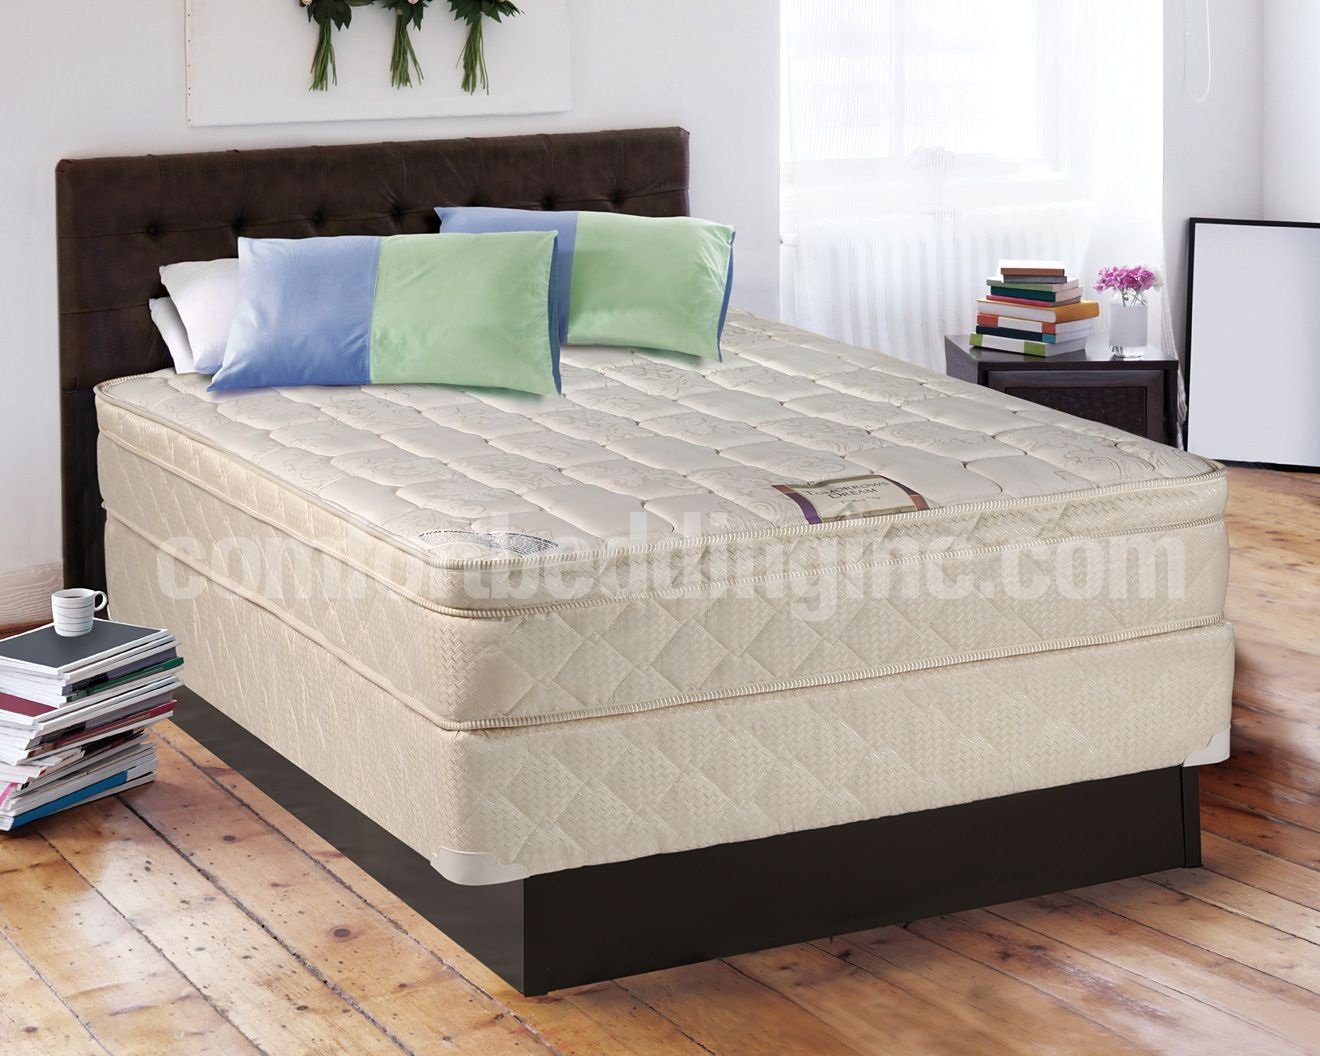 "Buy Luxury Plush Firm Quilted Top 13"" Foam Encased Innerspring Mattress - Full With 8"" Box Foundation"